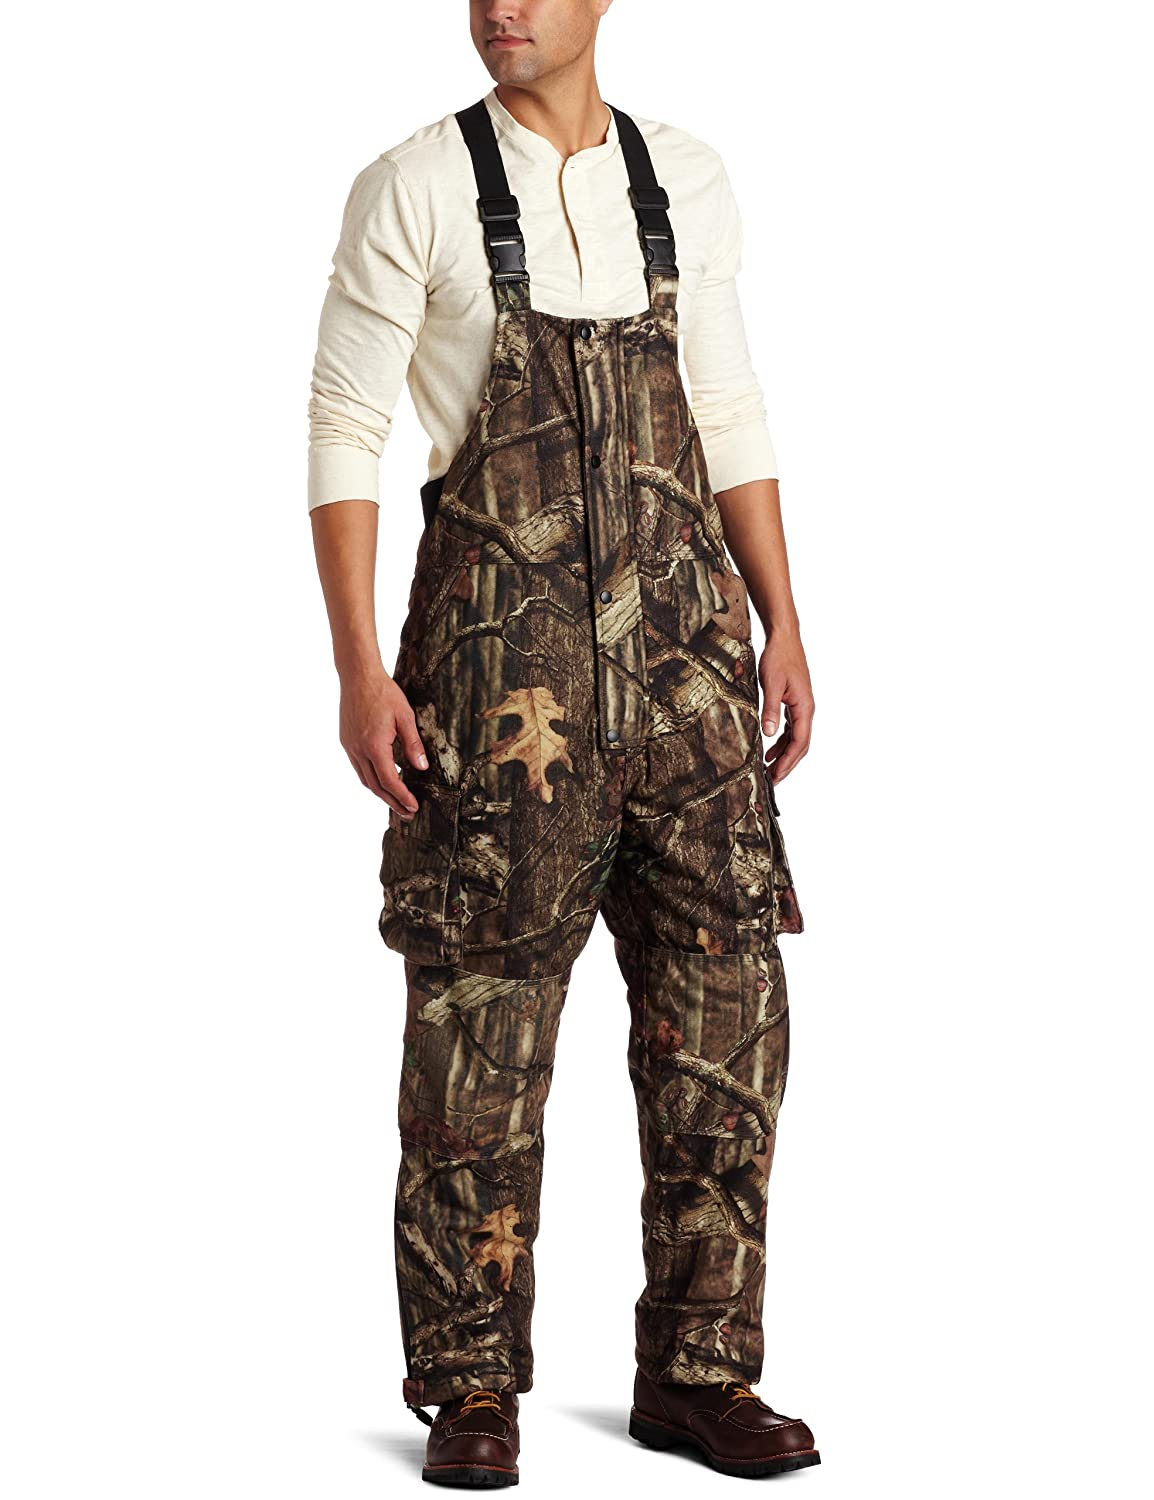 Buy Yukon Gear Men S Insulated Bib Overalls Mossy Oak Infinity Xx Large Online At Low Prices In India Amazon In